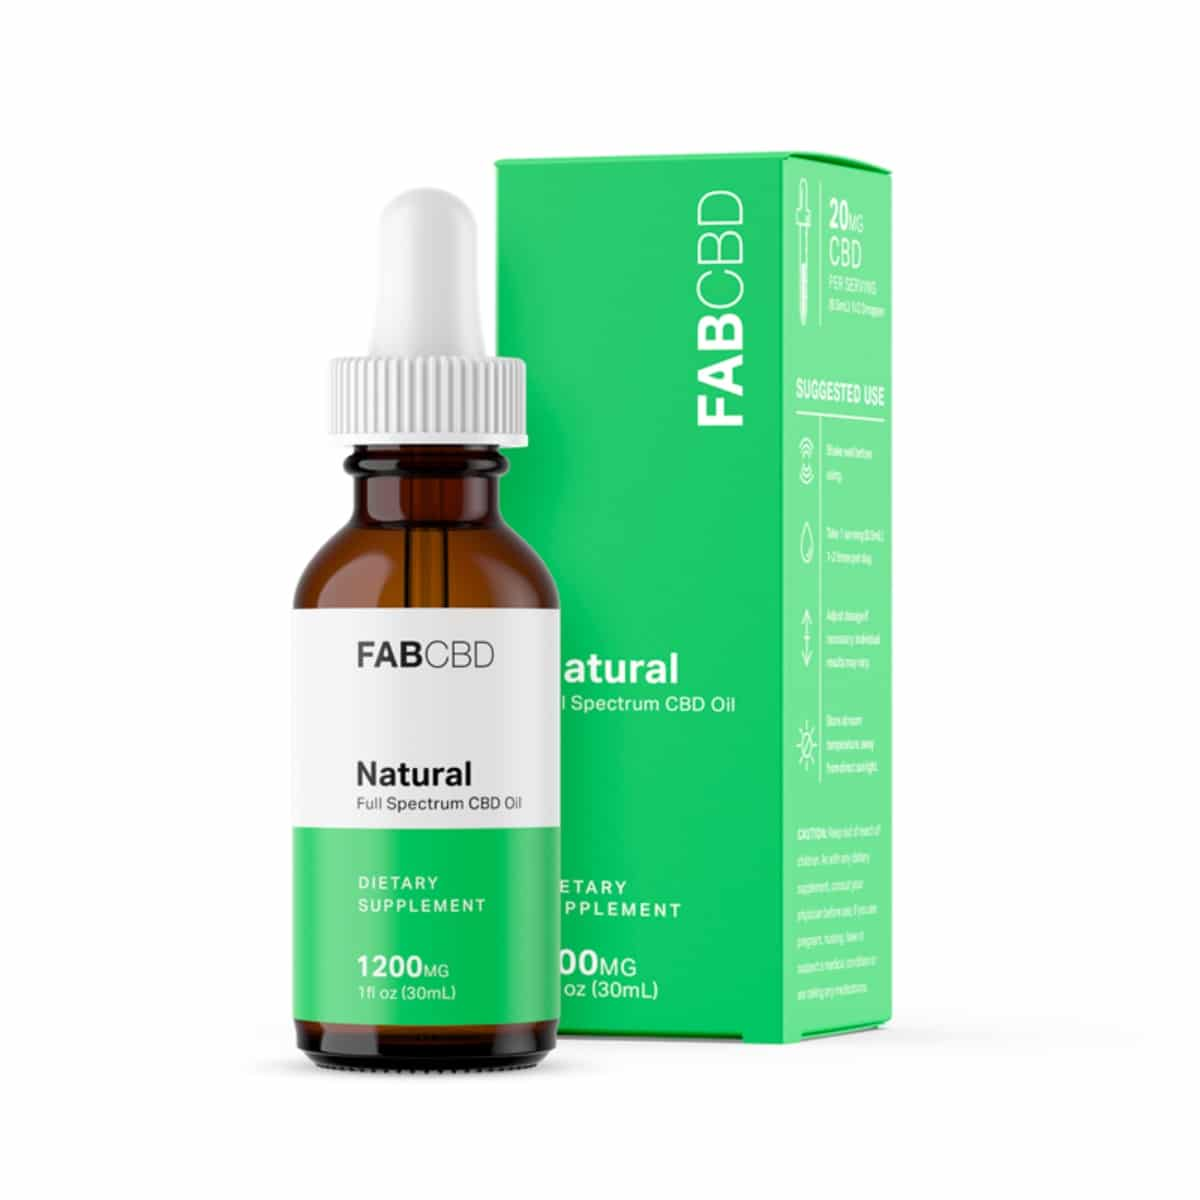 Fab CBD Full Spectrum CBD Oil